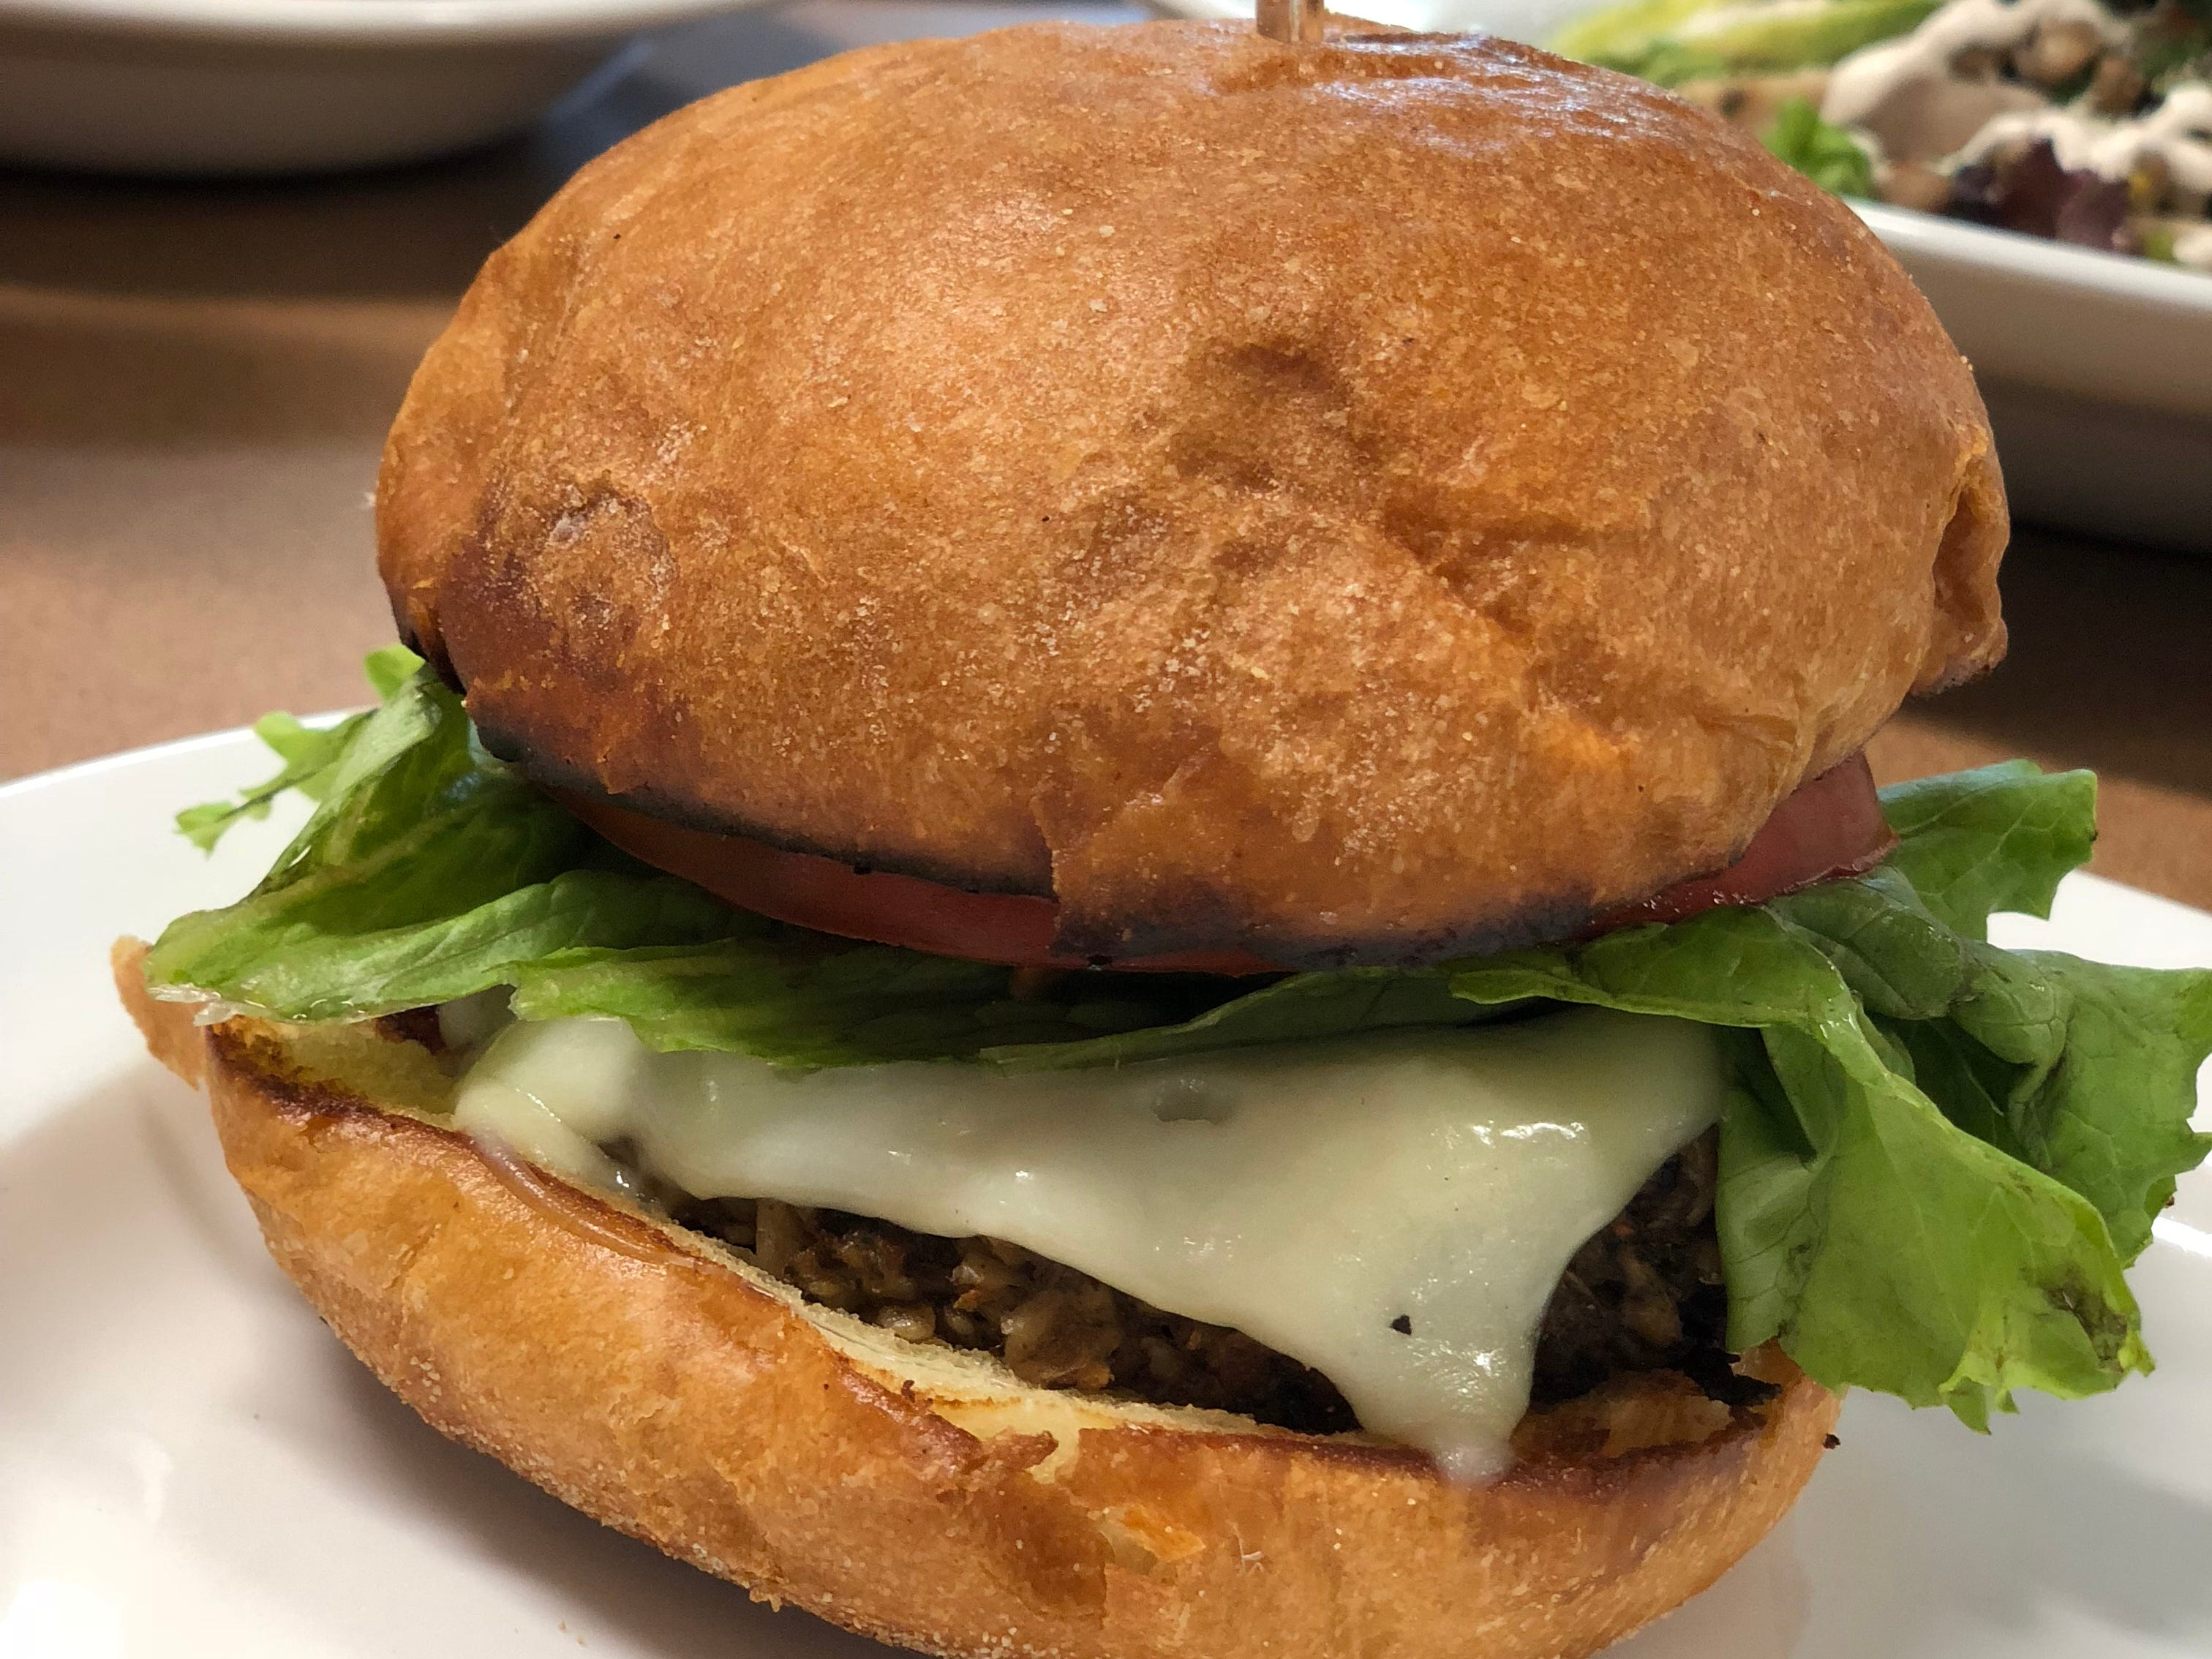 The newly re-opened Caritas Village cafe is serving veggie burgers from Fuel.  They are also serving traditional burgers with grass fed beef from Marmilu Farms.